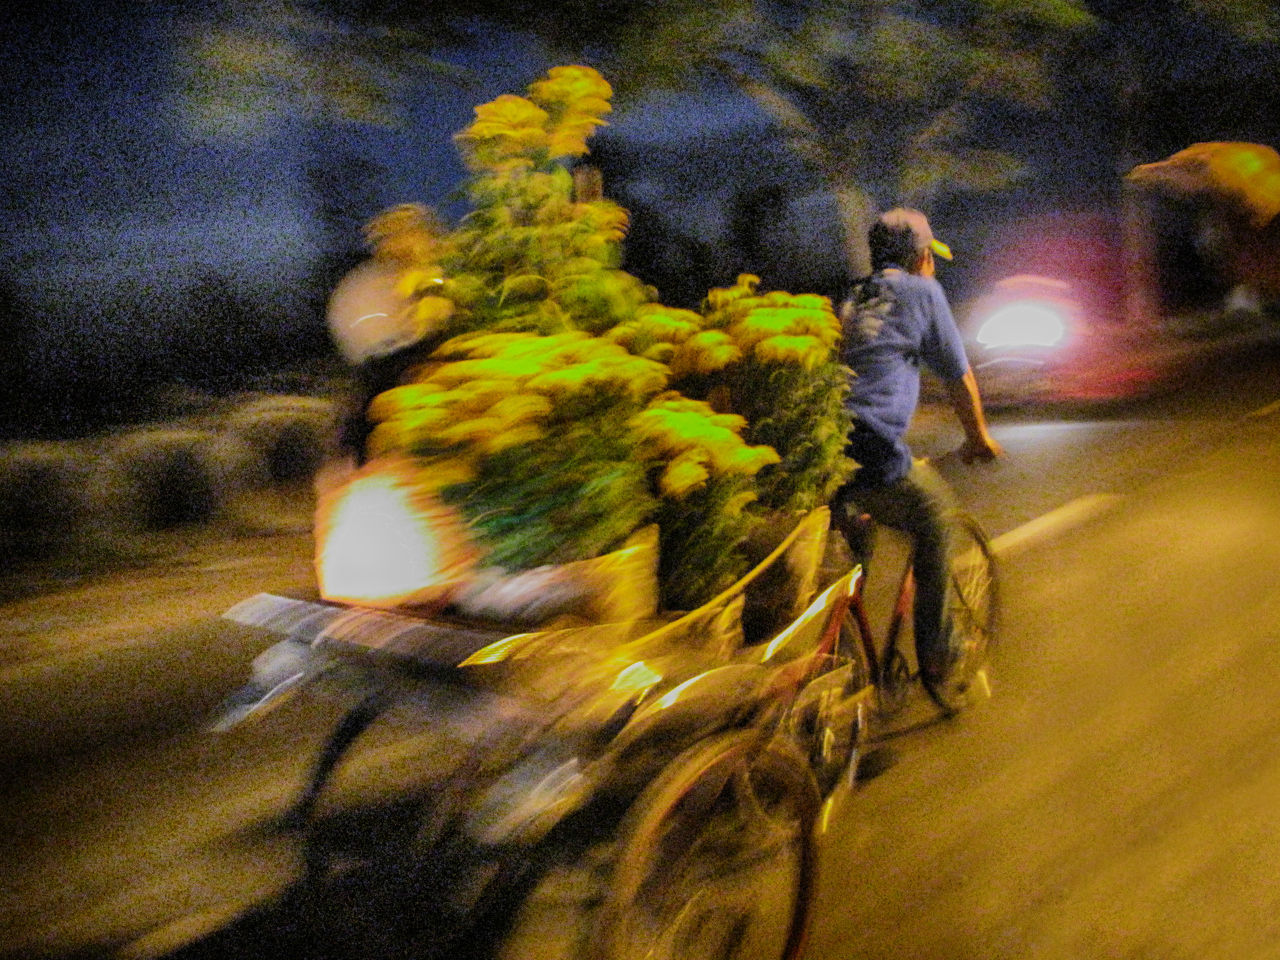 Blurred Motion Boys Casual Clothing Childhood Flowers Full Length Leisure Activity Lifestyles Men Motion Mouvement Mouving Night Person Speed No Filter, No Edit, Just Photography Street Transportation Tricycle My Commute The Street Photographer - 2016 EyeEm Awards Photography In Motion Blurred In Motion Need For Speed The Following